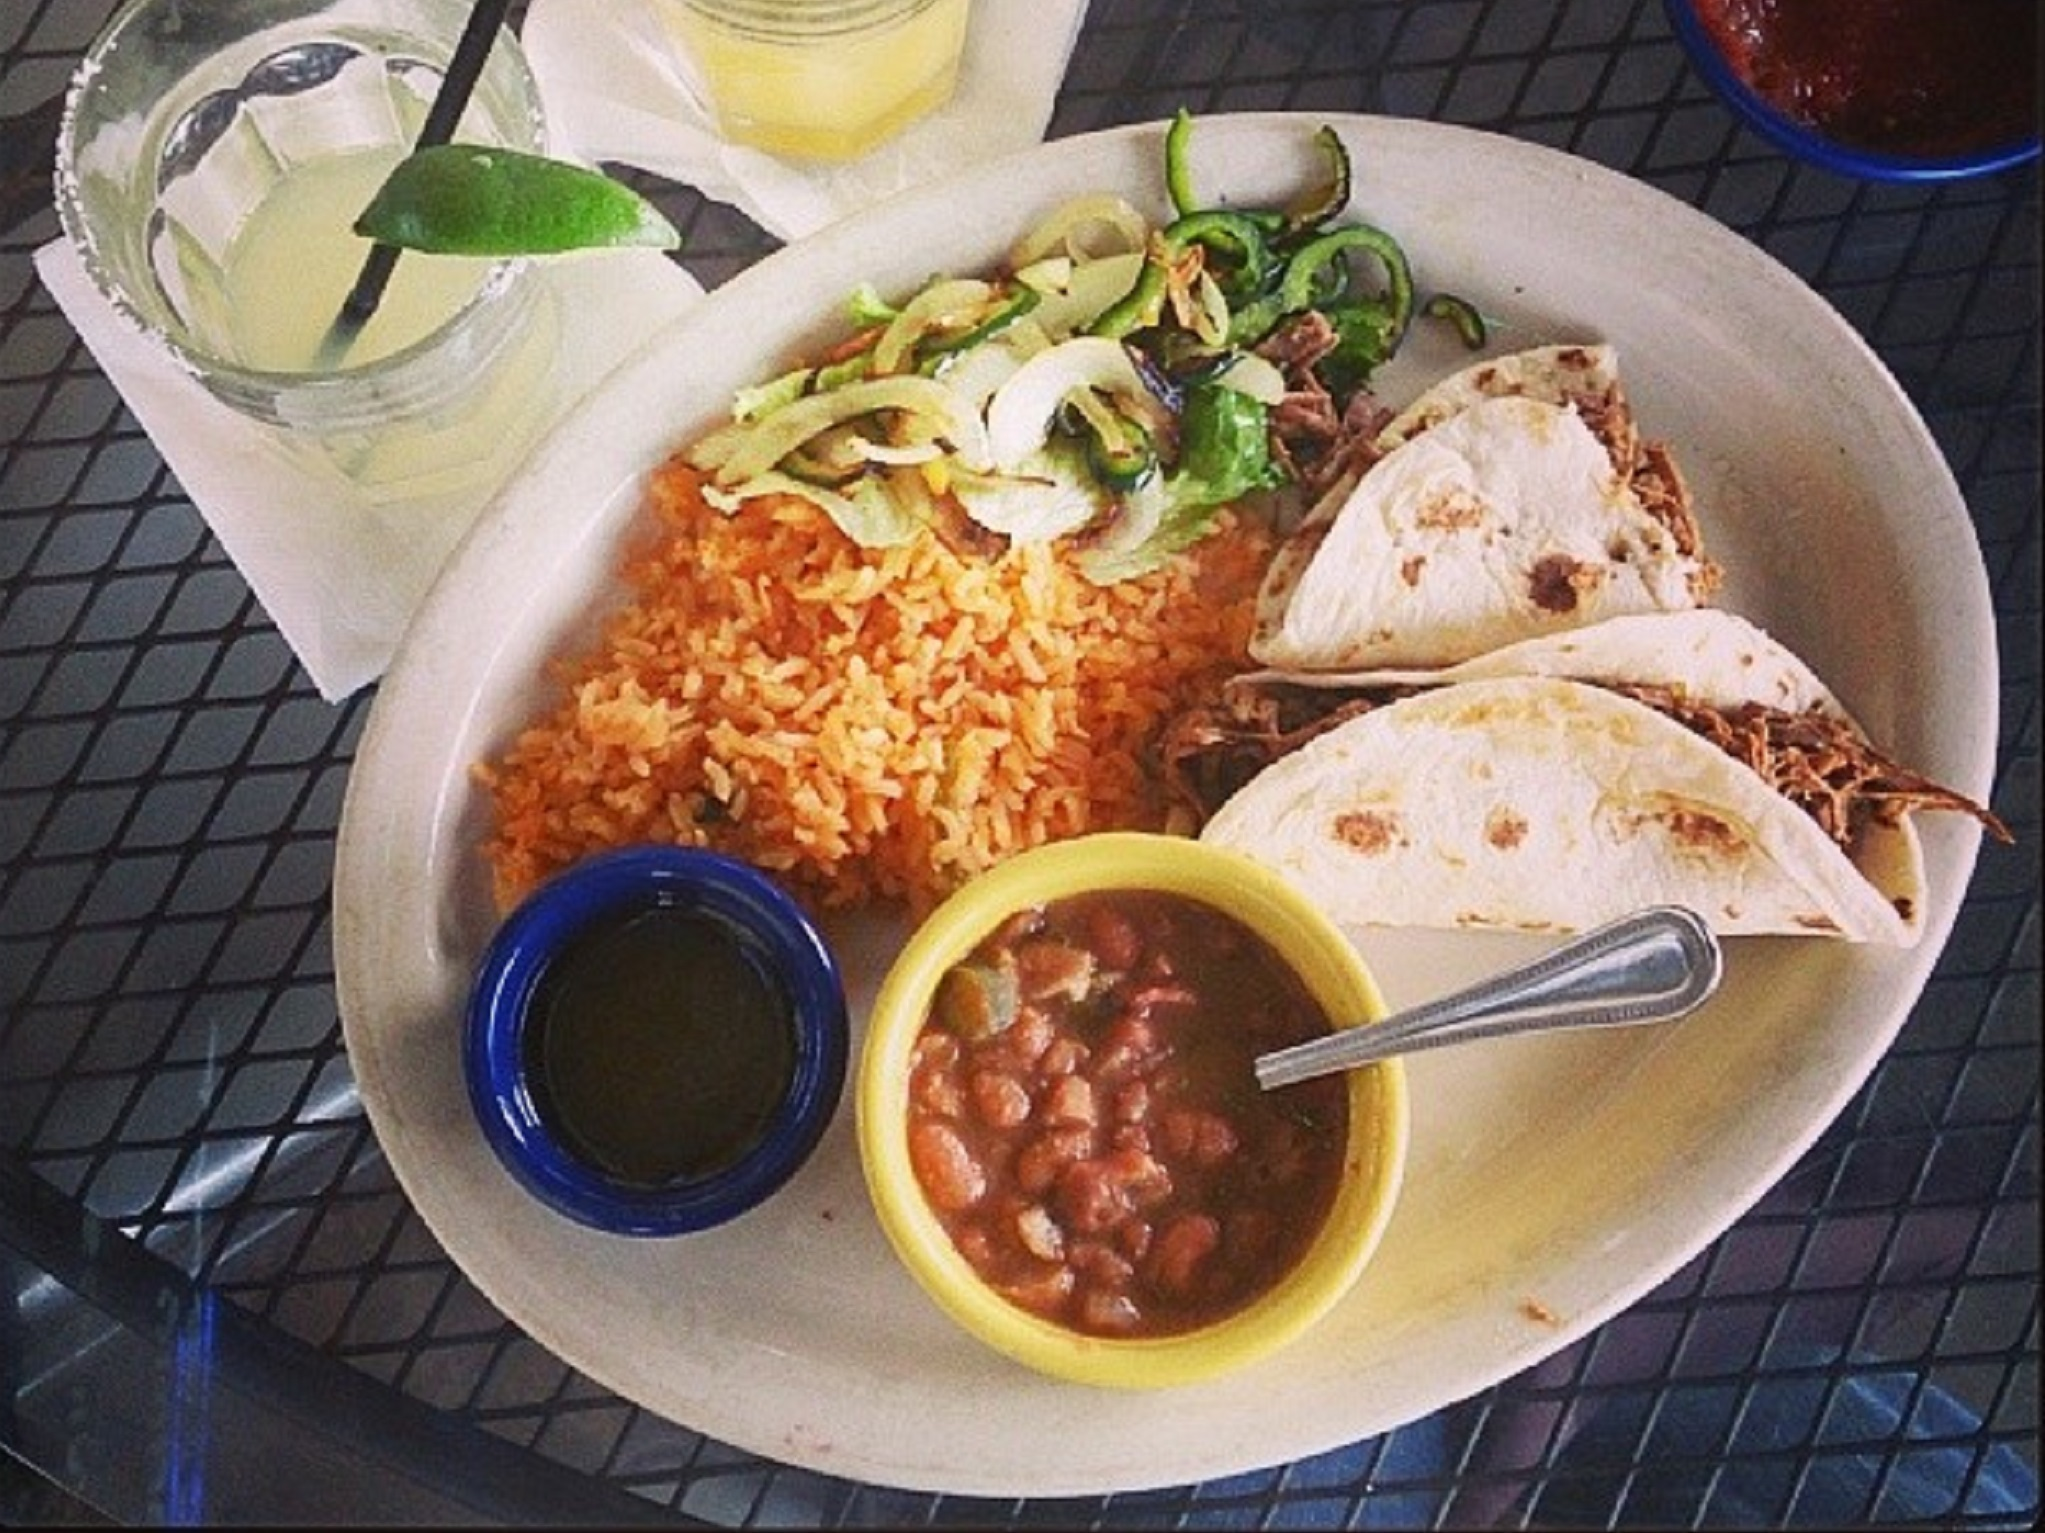 A plate of tacos, rice and beans with a margarita